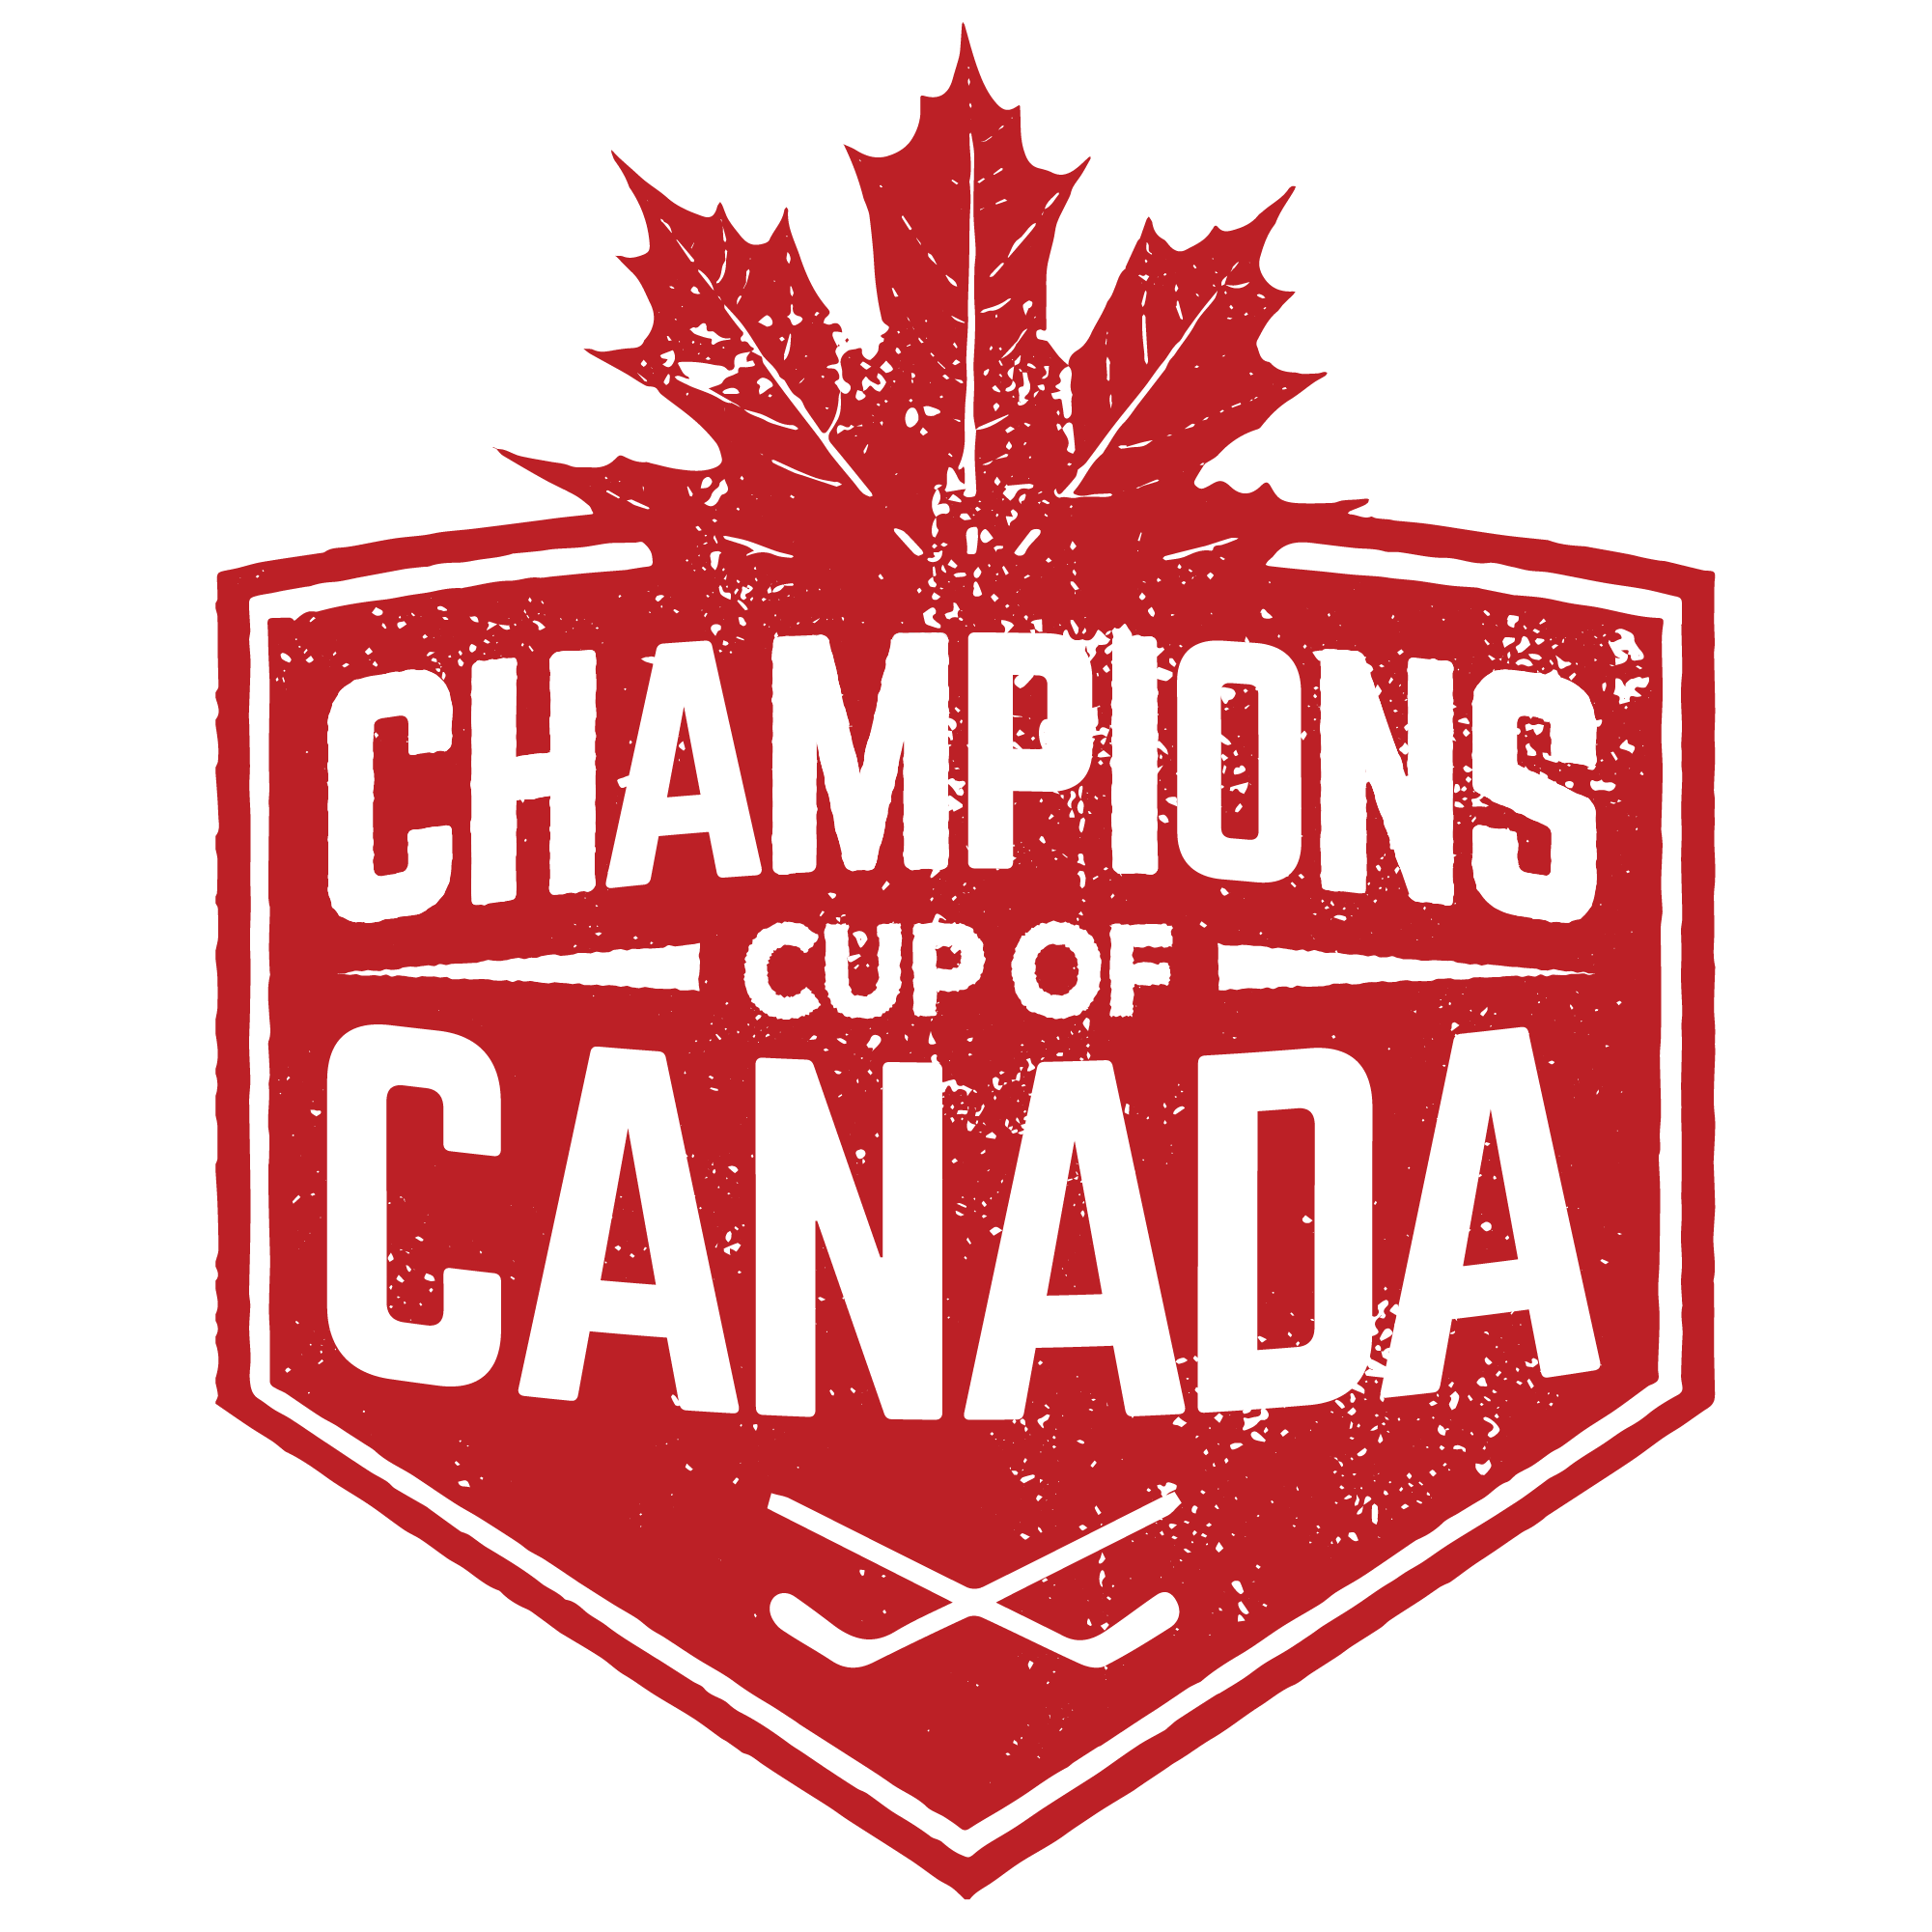 Champions-Cup-of-Canada